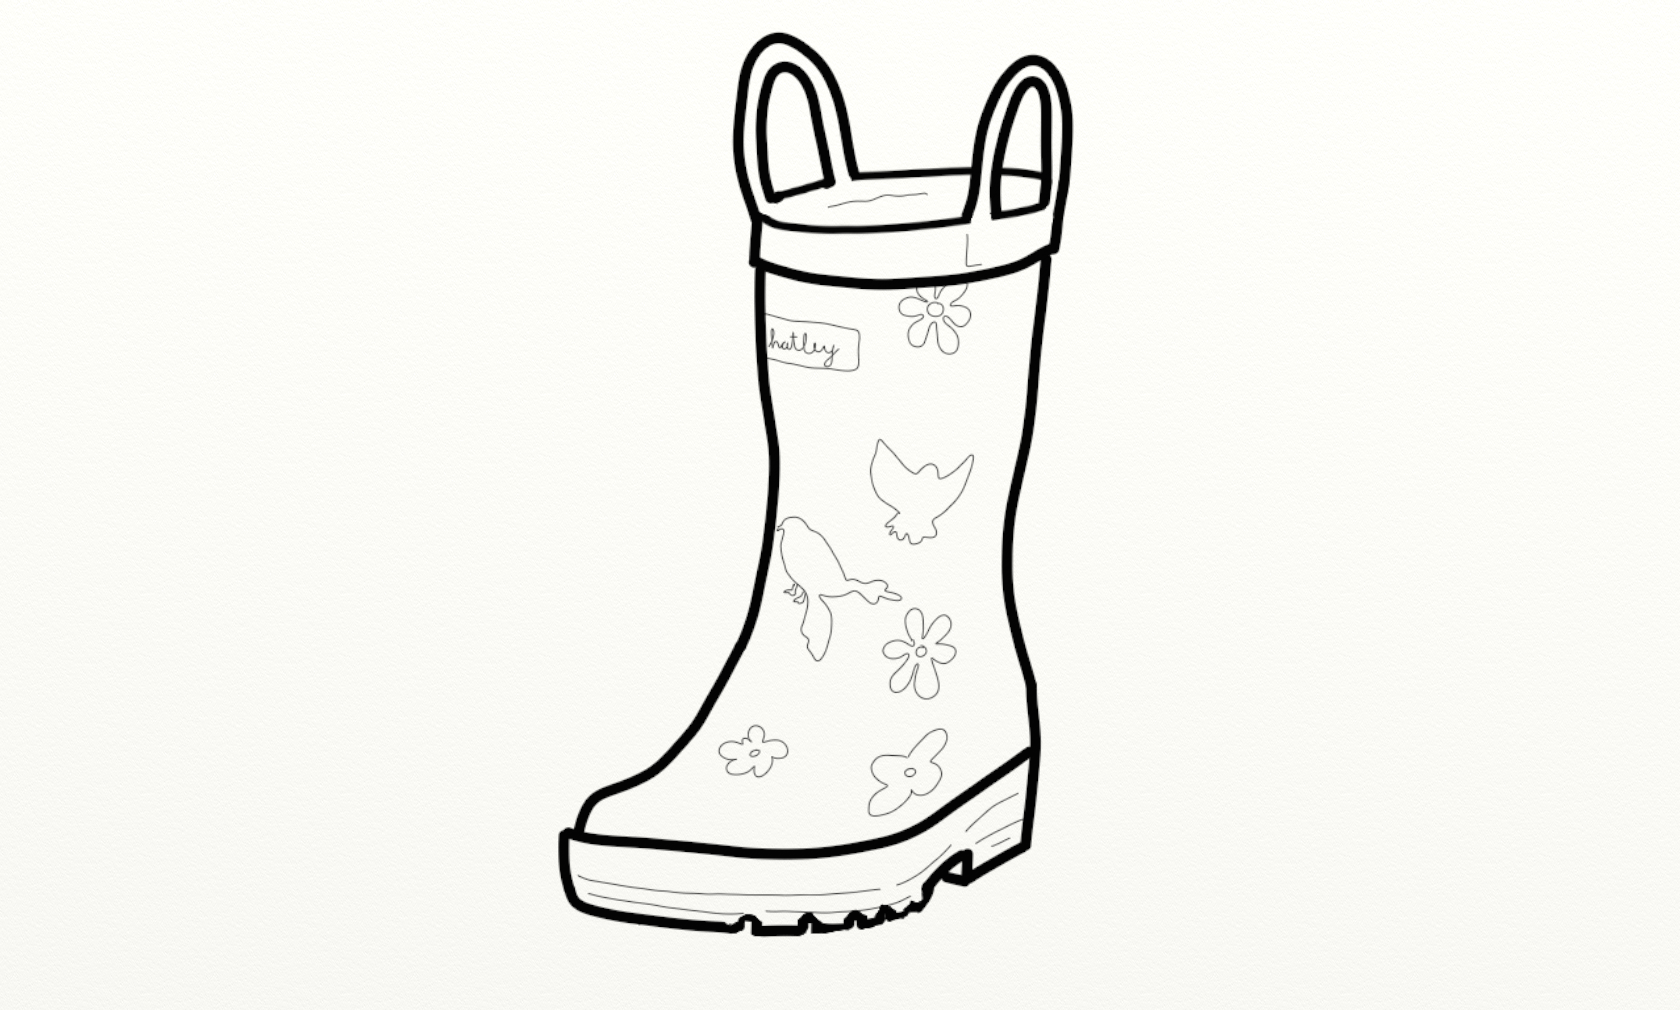 1680x1010 Rain Boots The Boot Kidz Girl'Wellington Boots Girl'Wellies Clip